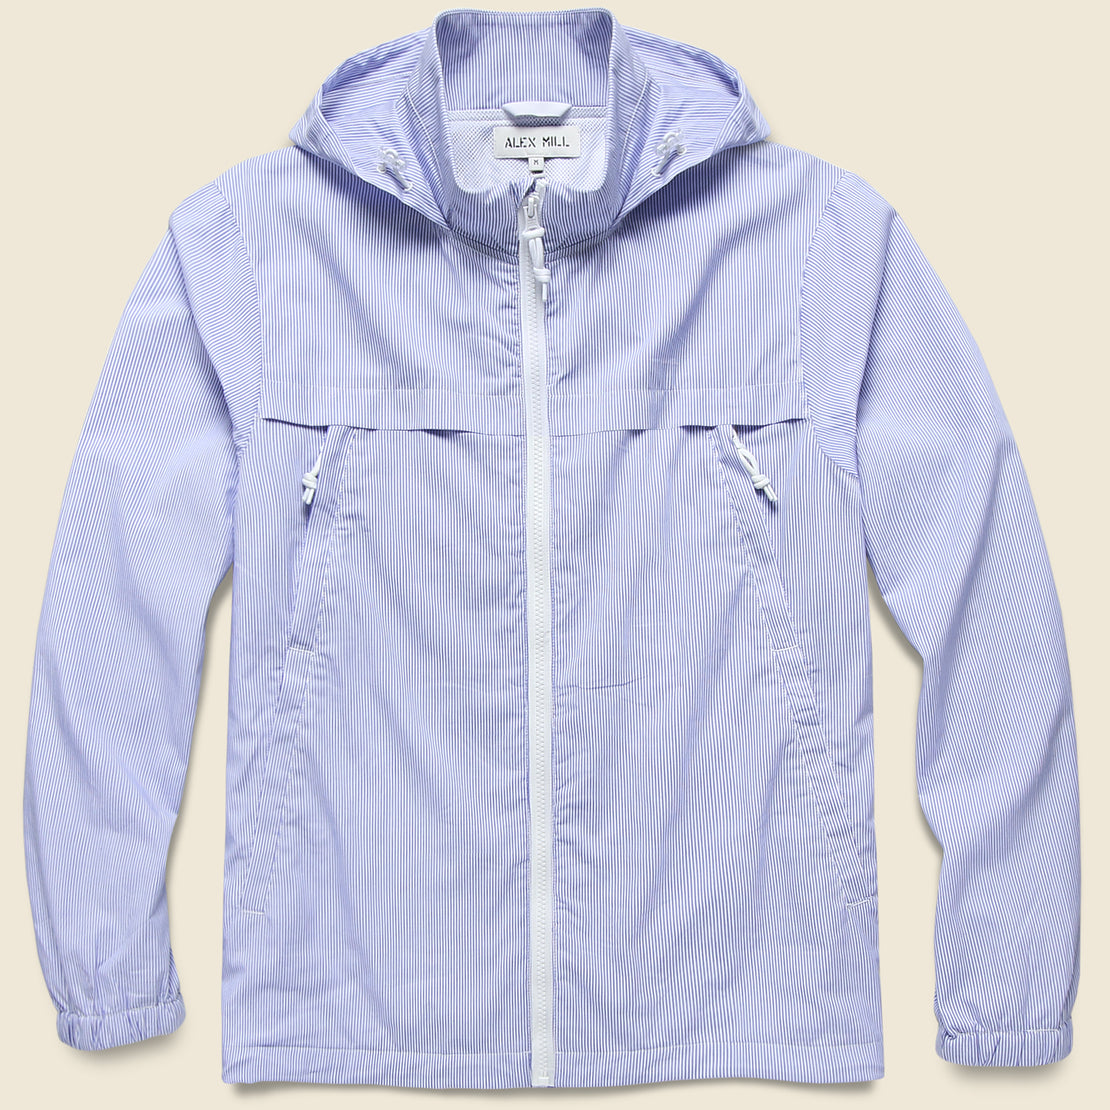 Alex Mill Packable Zip Jacket - Blue/White